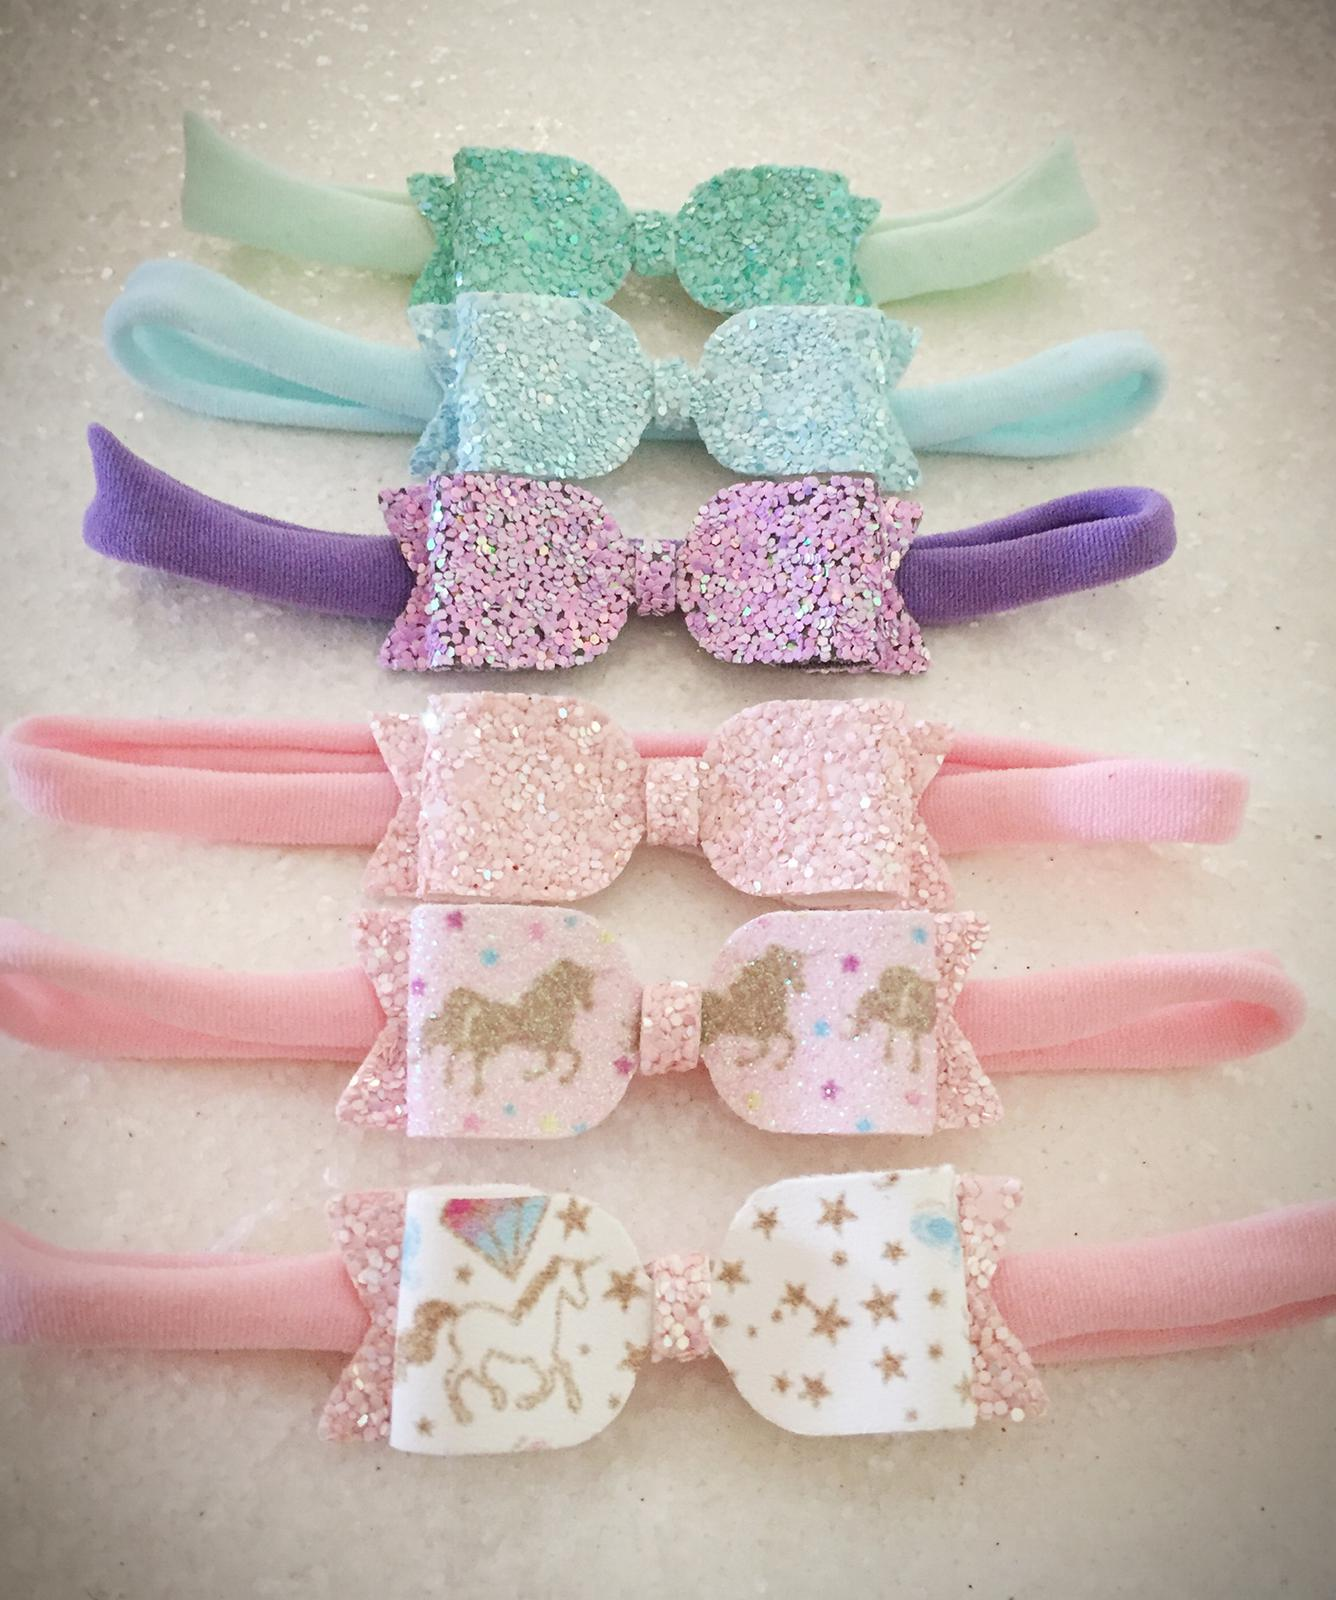 Mini bow headbands